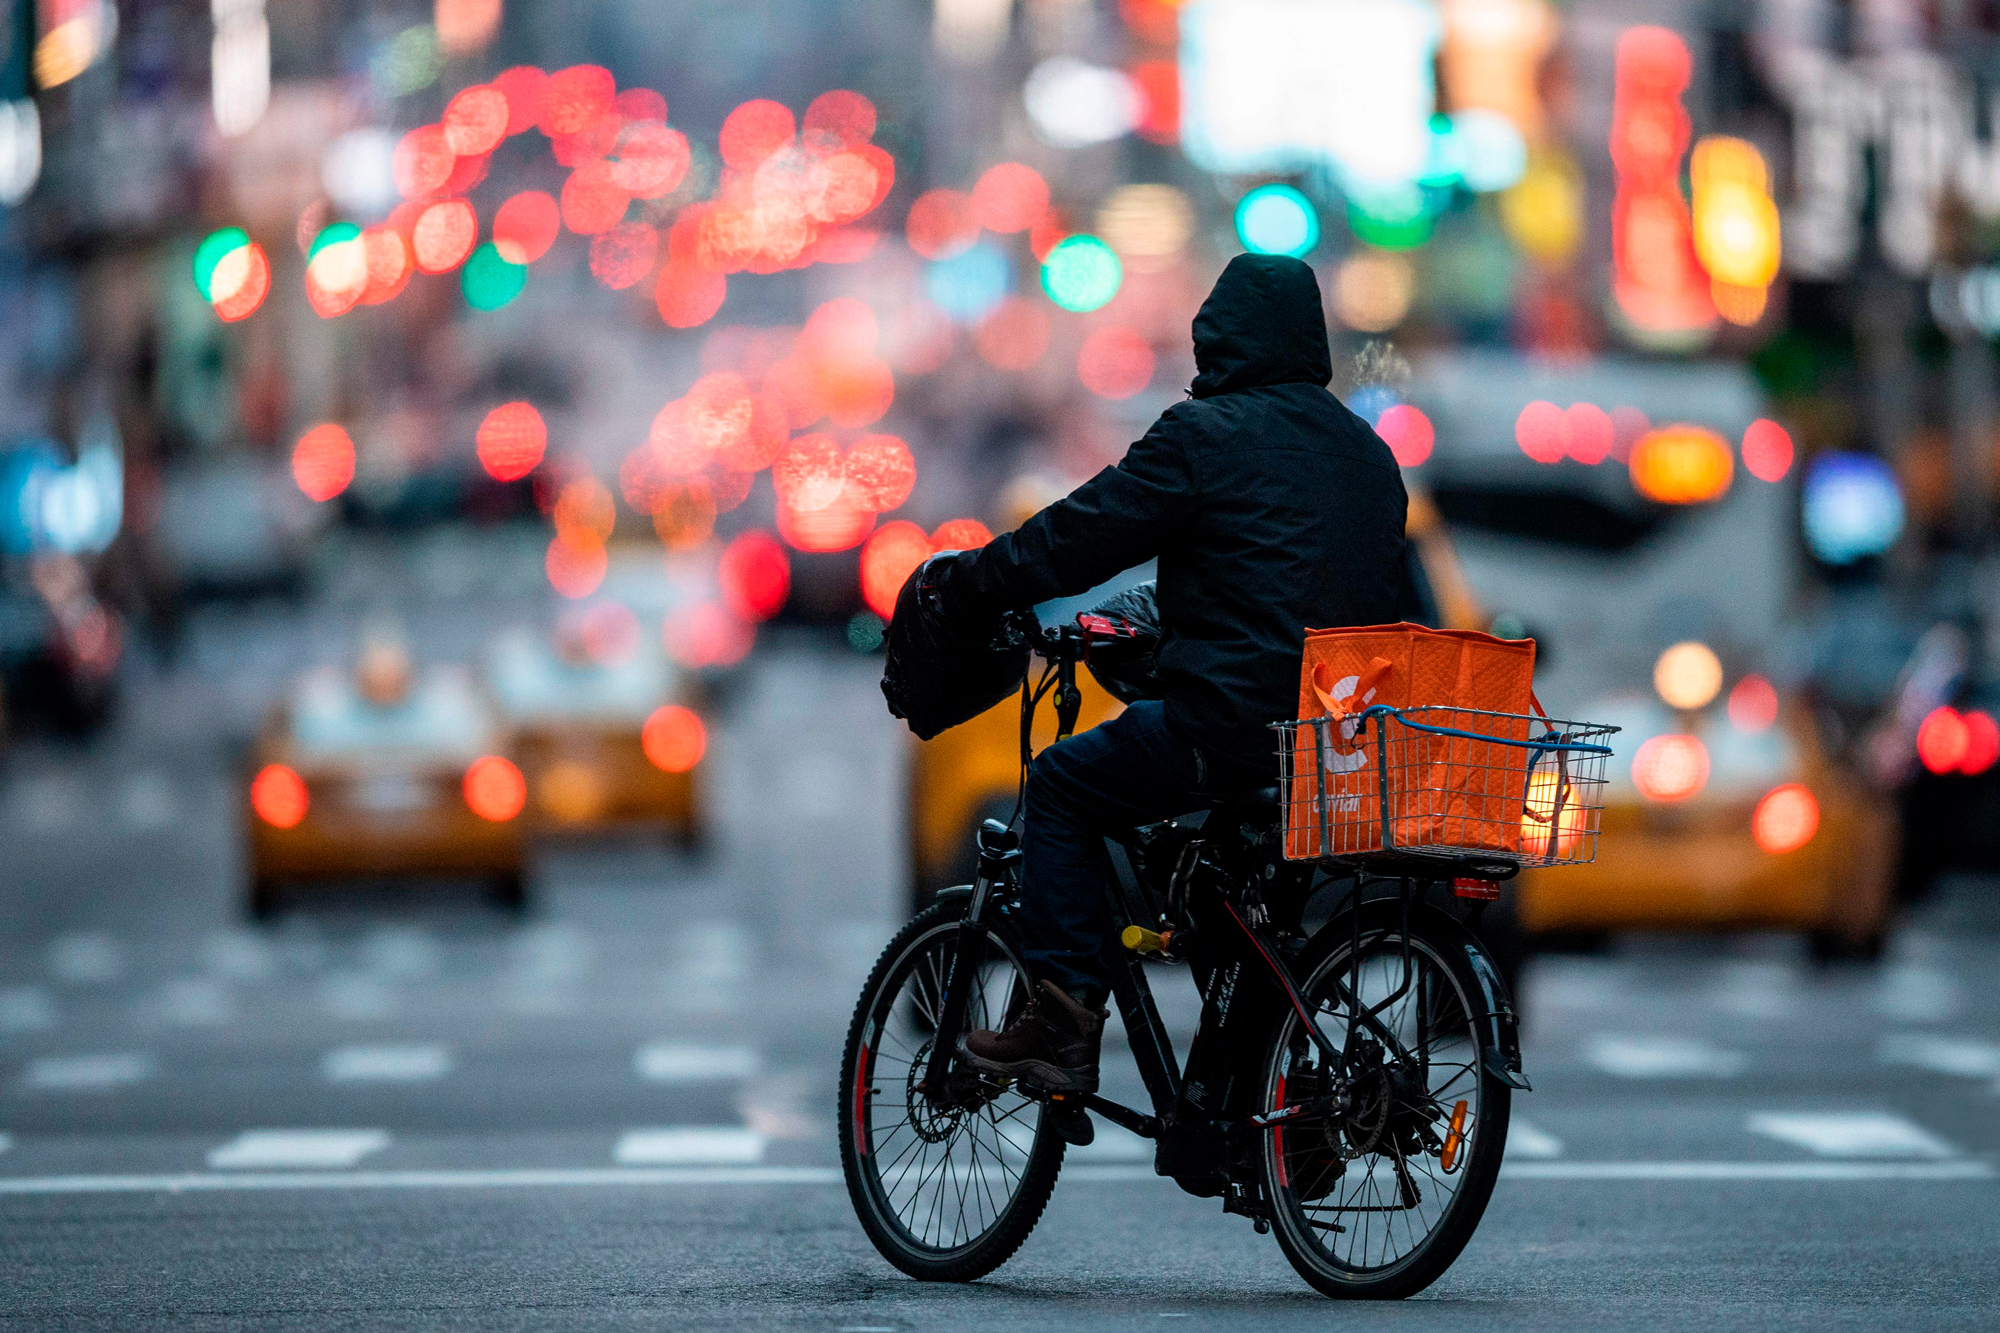 Cities Capping Restaurant Delivery Fees